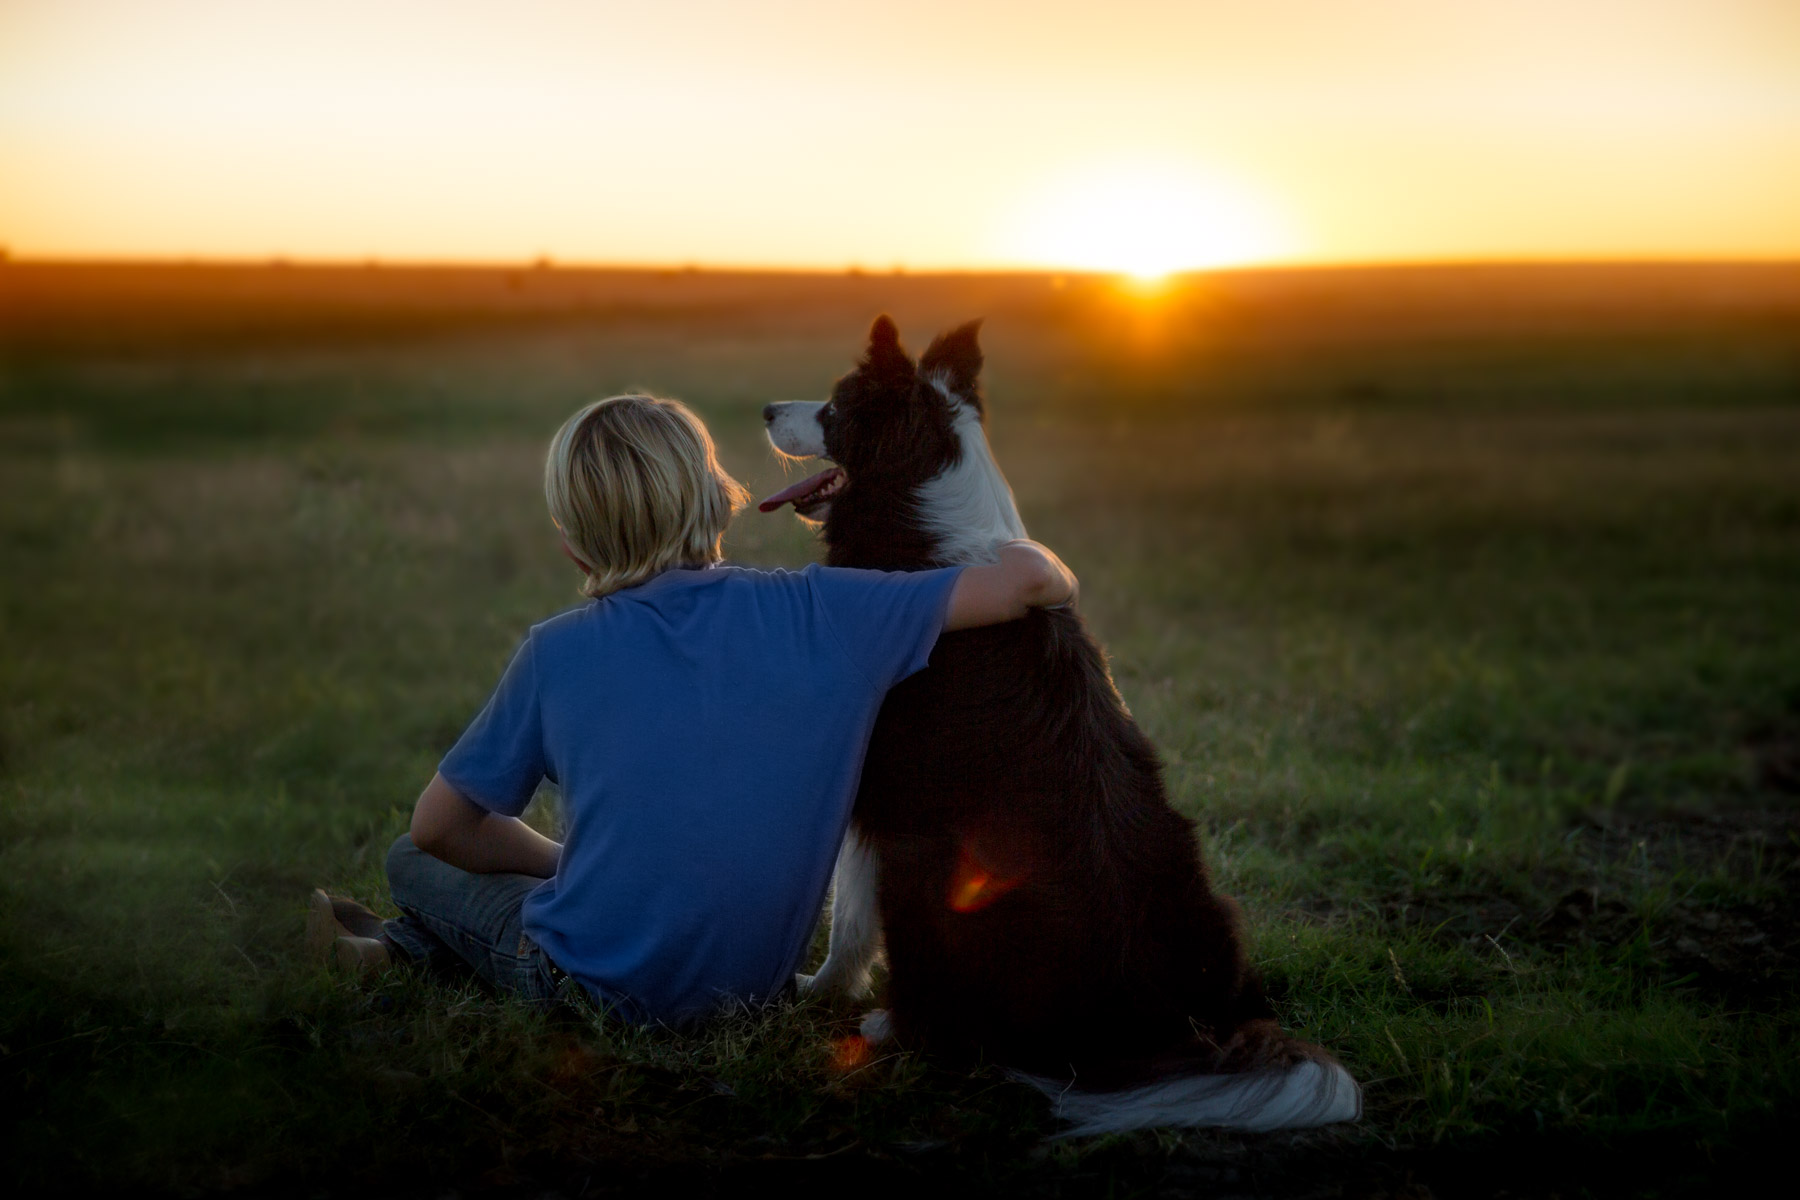 kid-hugging-dog-collie-sunset-outdoors-dog-photography.jpg